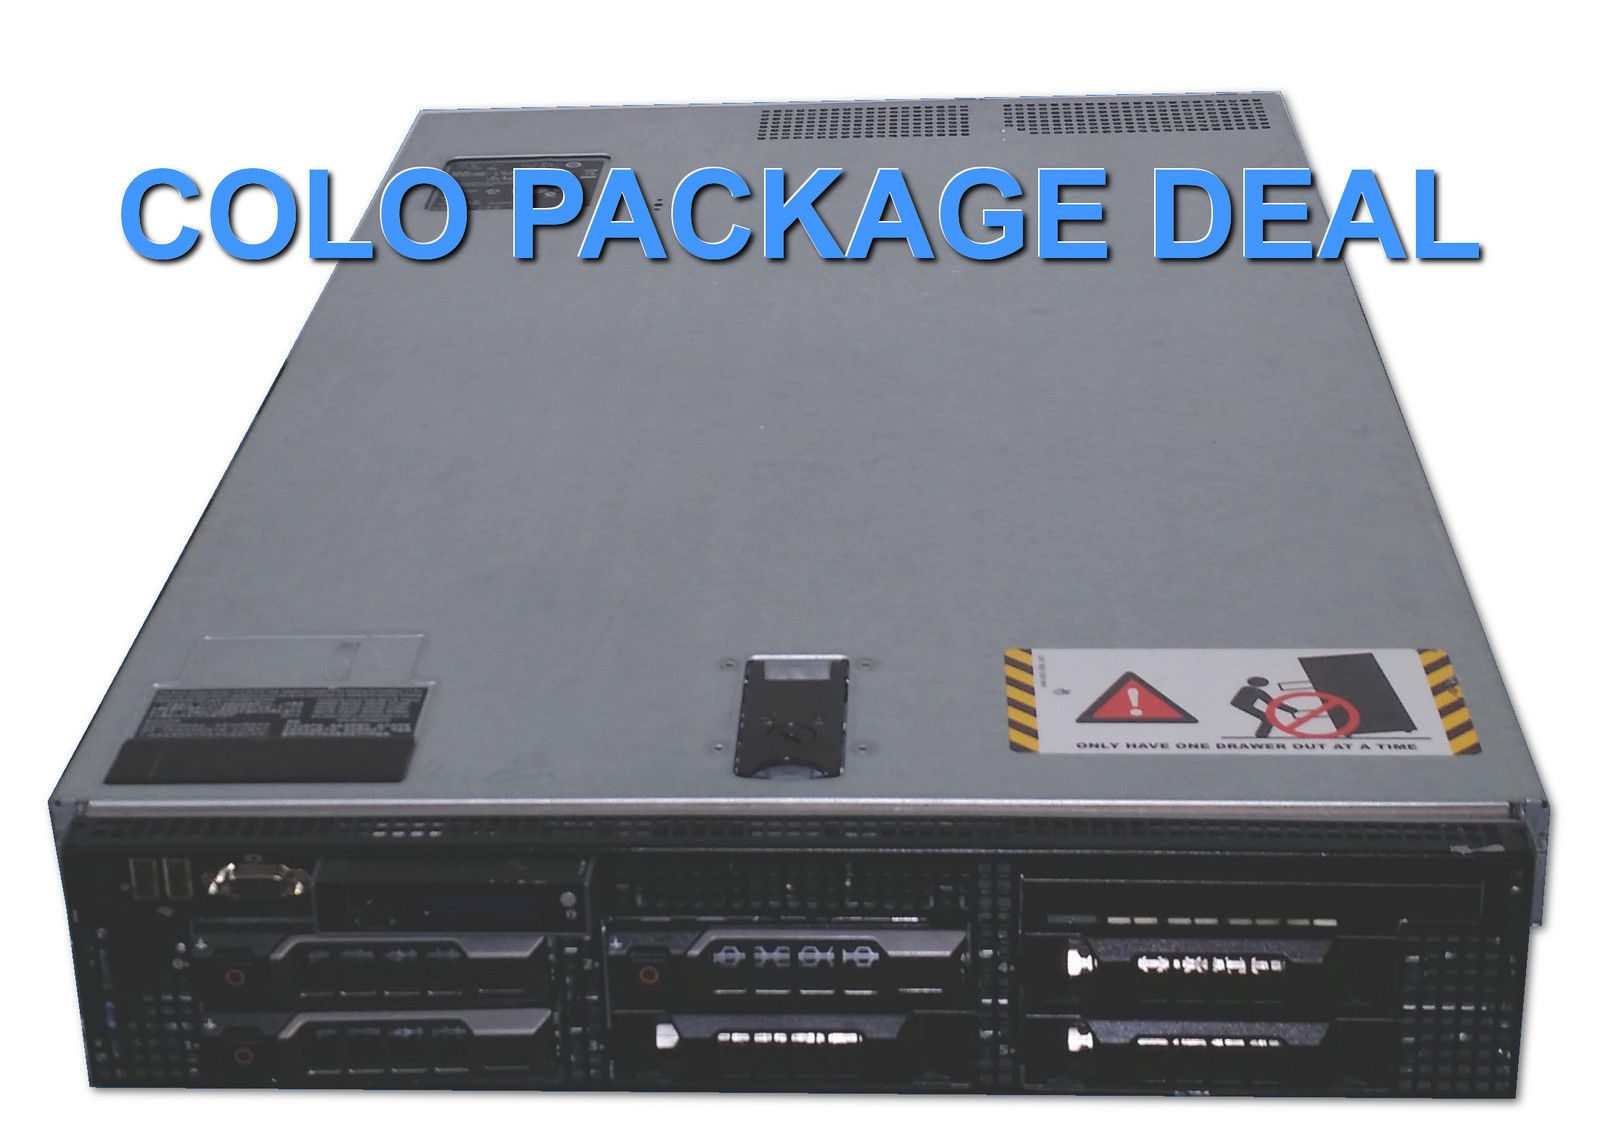 dell poweredge r710 colocation package free - Free Colo